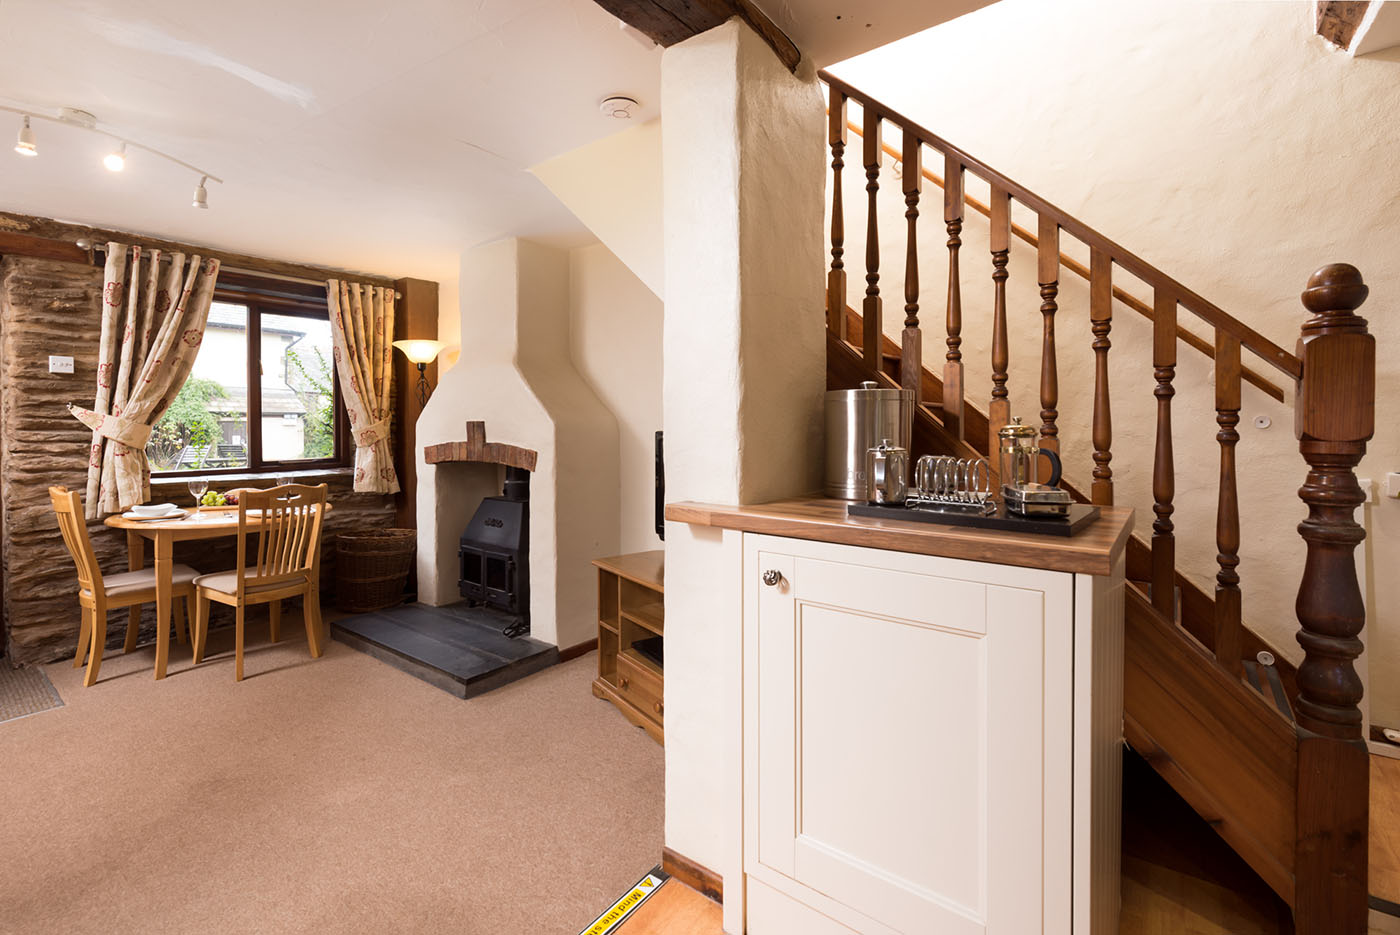 Hayloft living area and kitchen with stairs